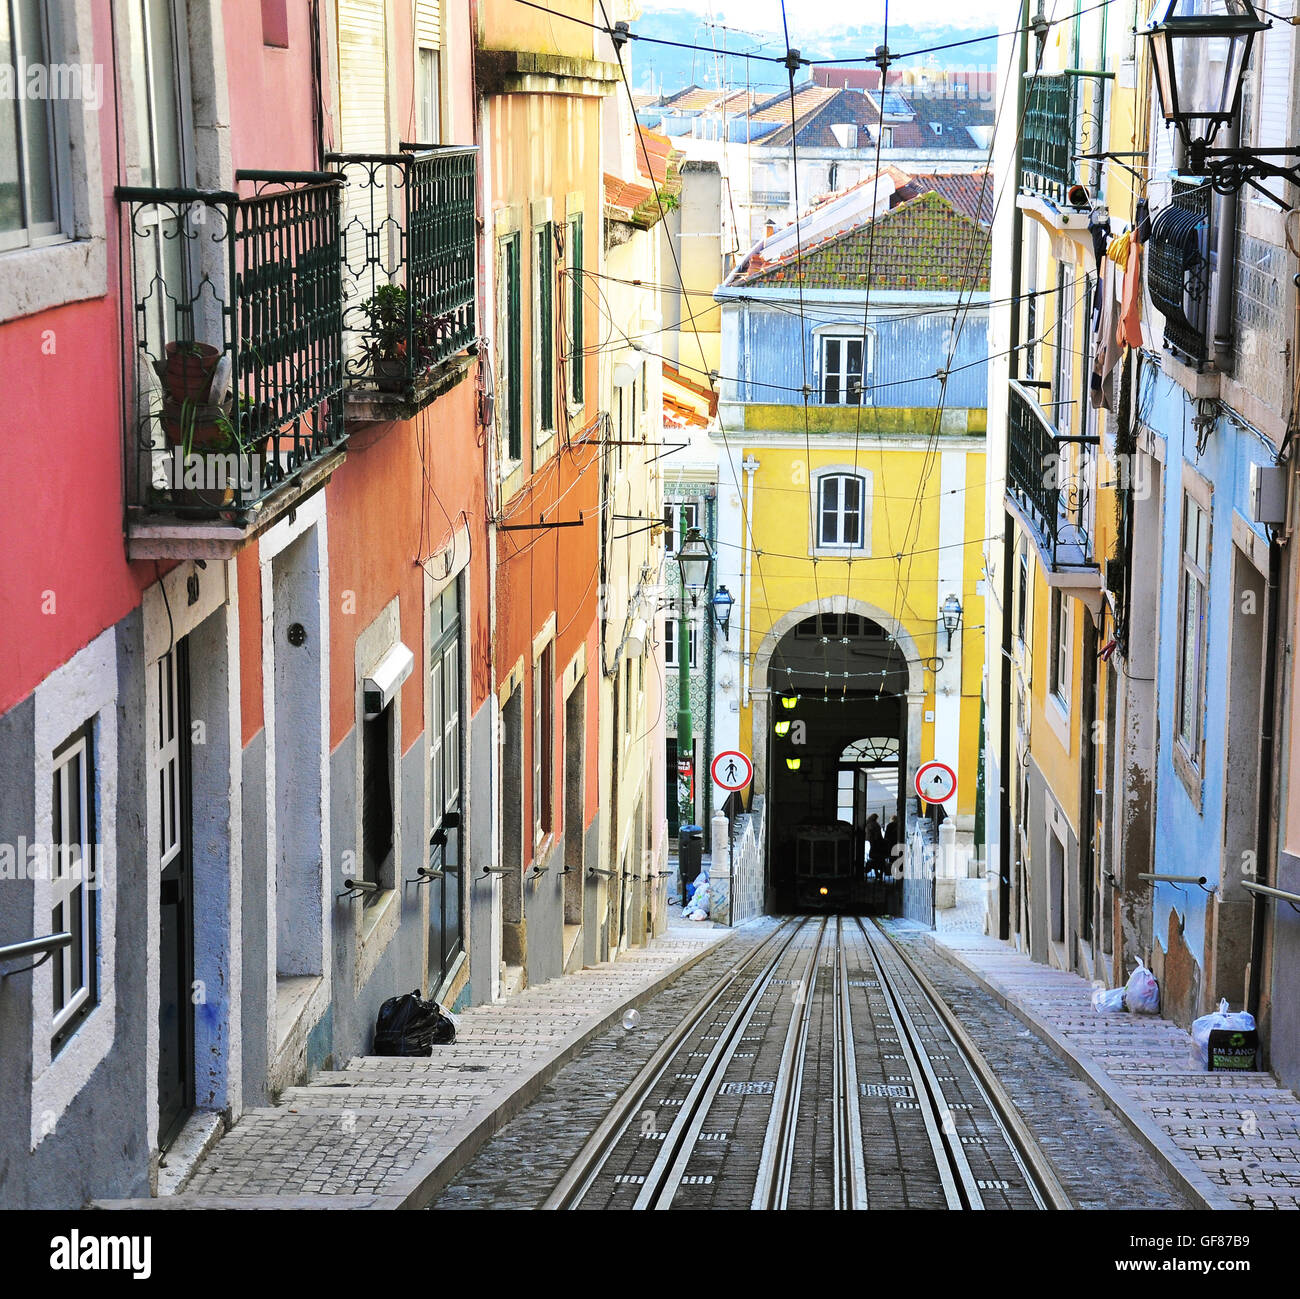 lisbon portugal december 28 view stockfotos lisbon portugal december 28 view bilder alamy. Black Bedroom Furniture Sets. Home Design Ideas